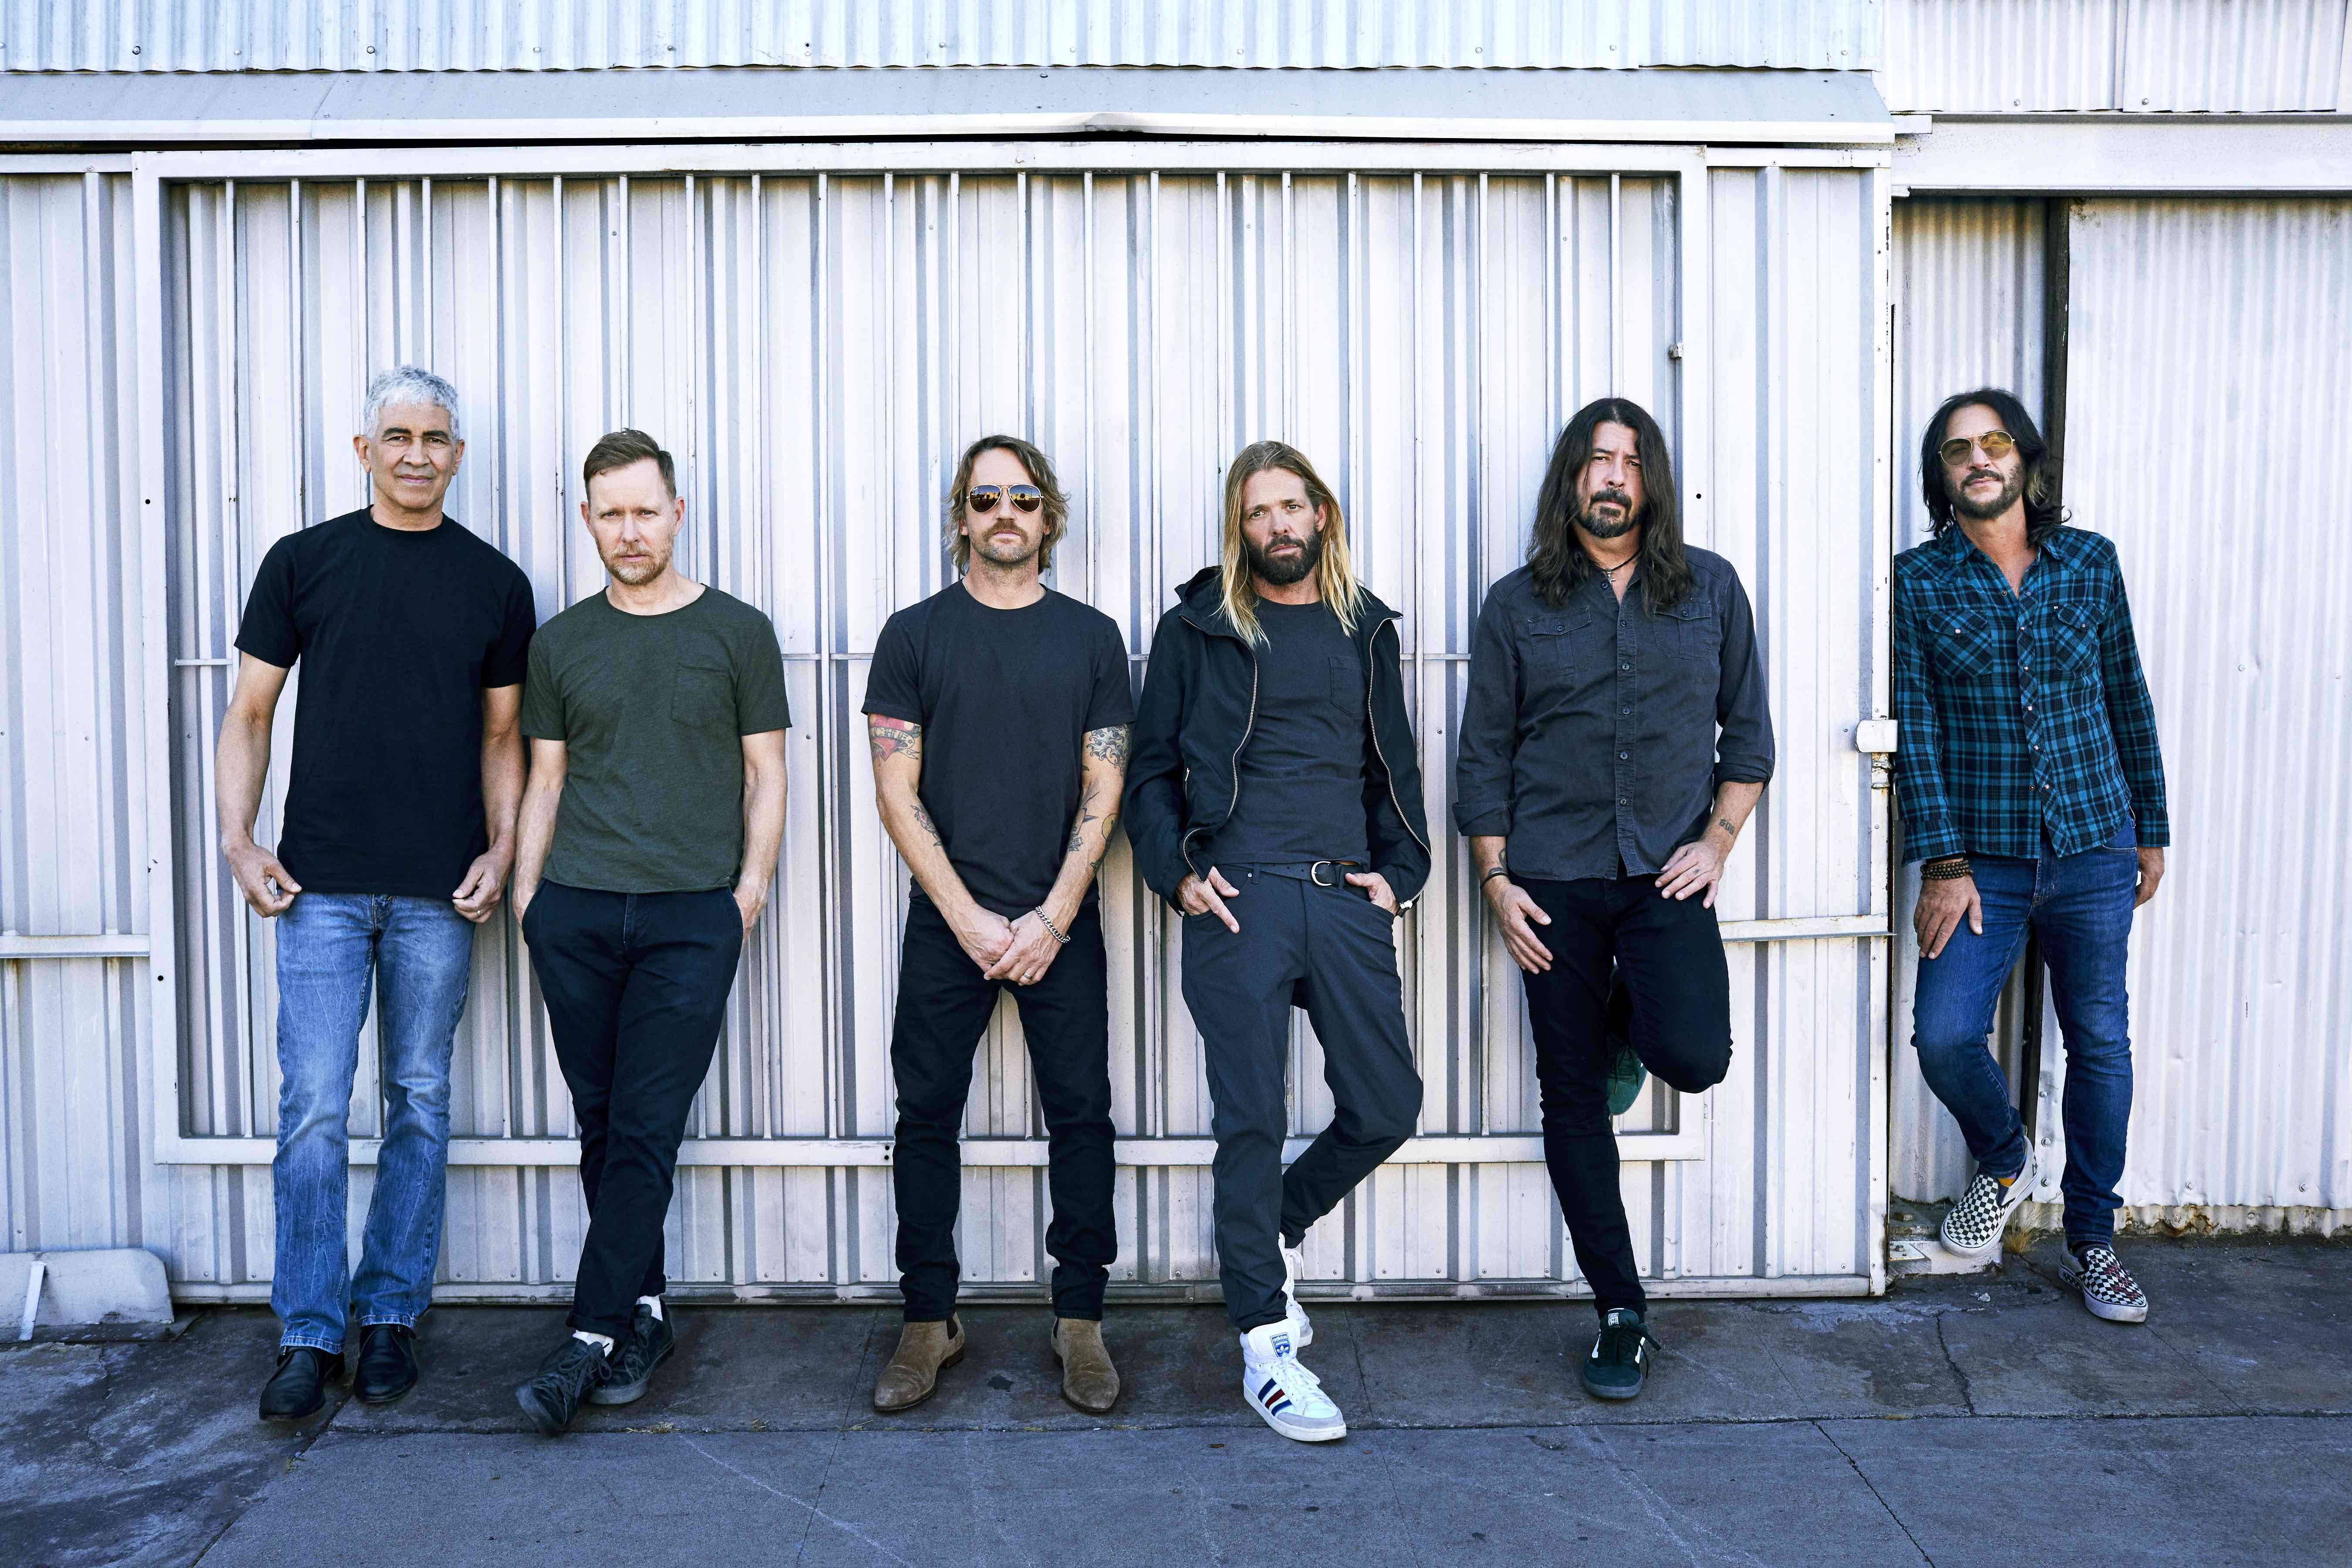 New music release from Foo Fighters 'Waiting On A War'